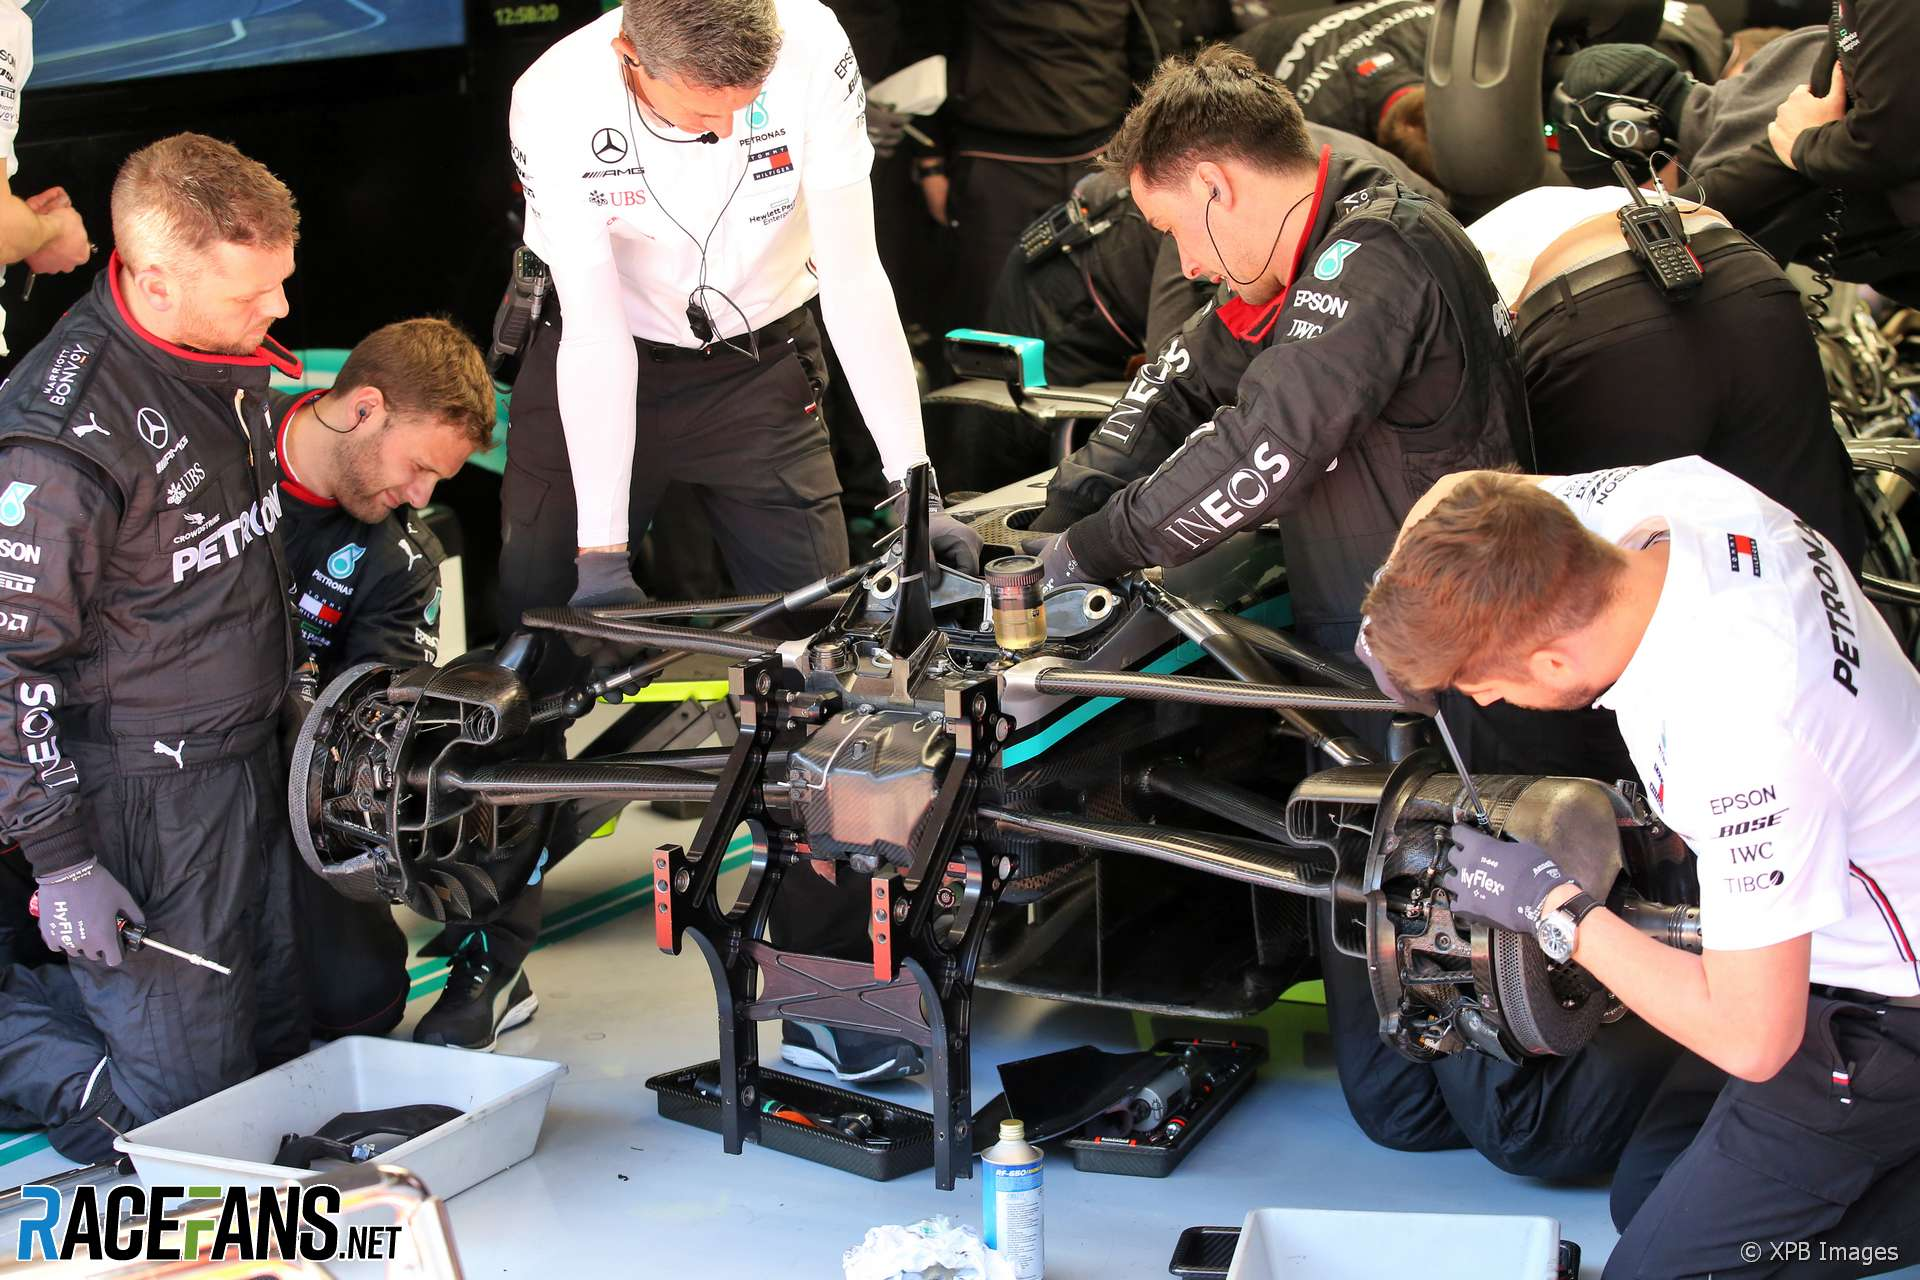 FIA: Mercedes' steering system 'DAS' appears to be legal · RaceFans